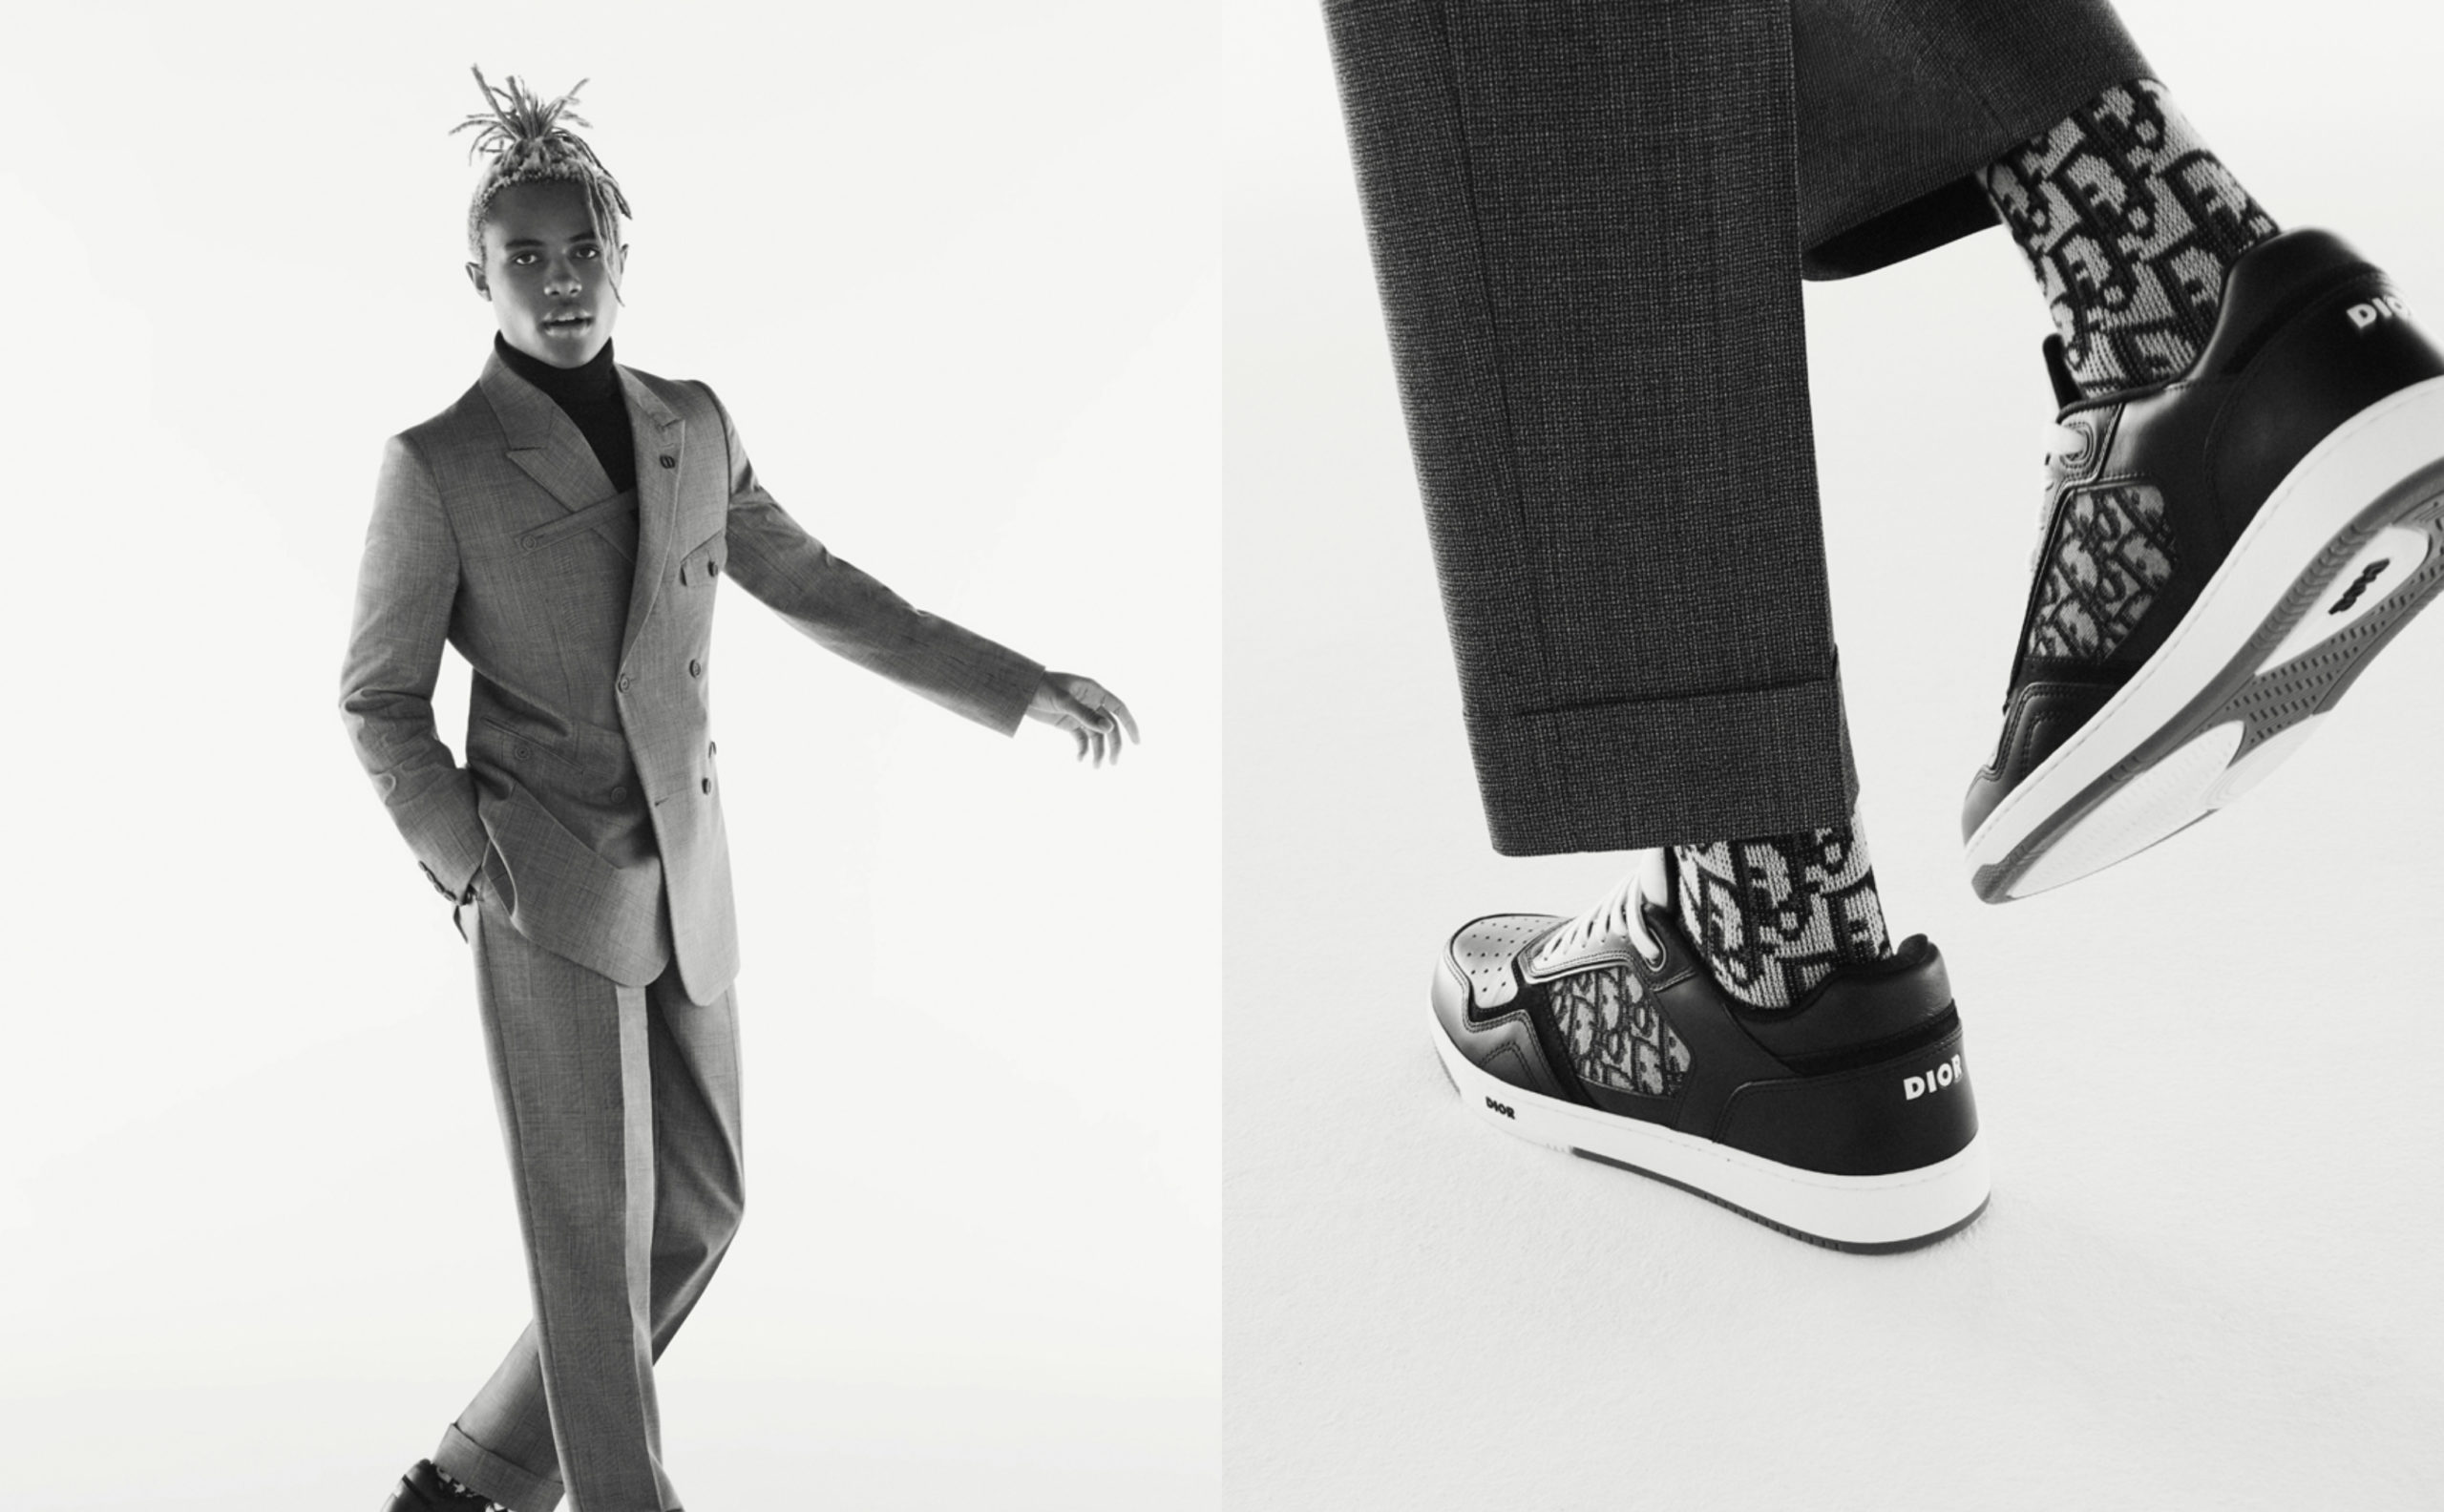 Dior Pair Suits and Sneakers for New Capsule